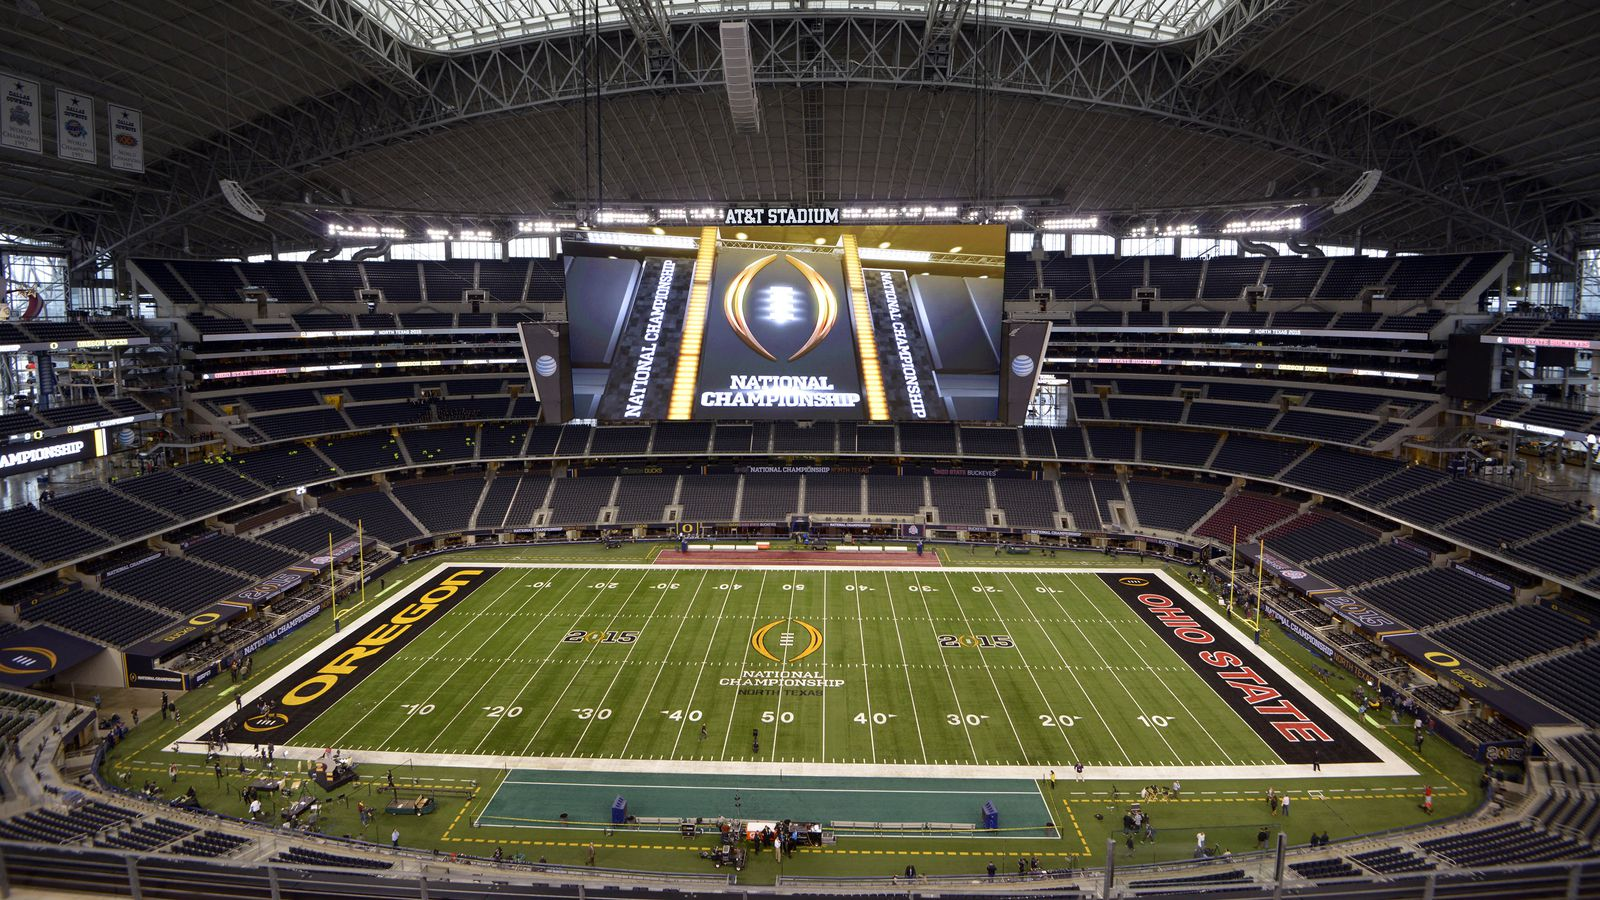 Kickoff time for national championship game - Ohio State 2015 College Football Championship Game Kickoff Time Tv Schedule And How To Watch Online